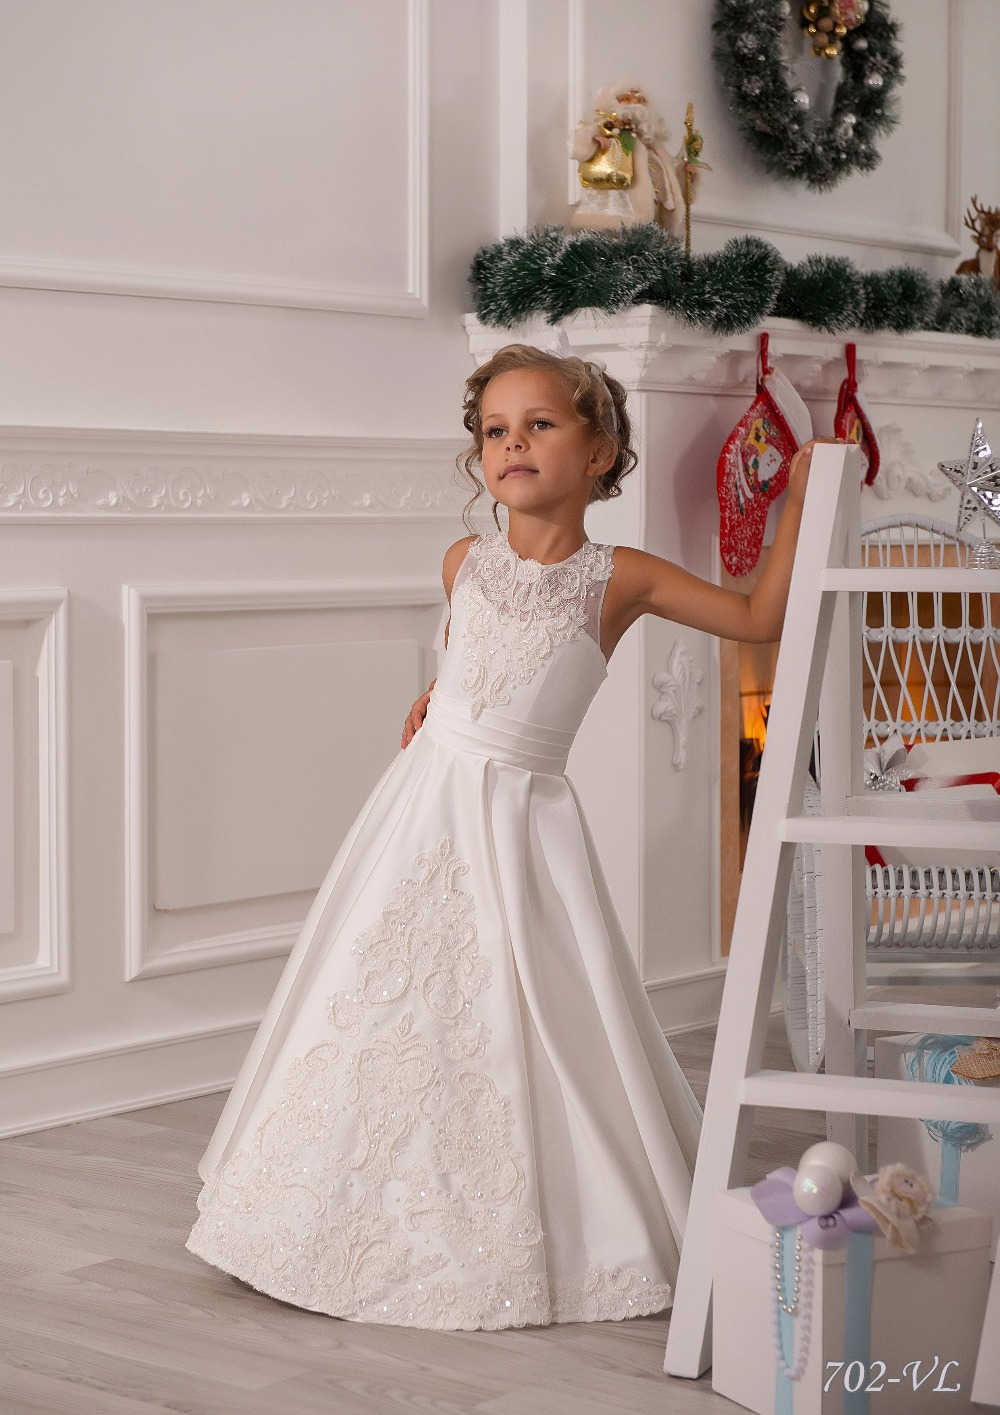 Elegant Sleeveless Lace Appliques Toddler A Line First Communion Dresses Girls Wedding White Kids Holy 2 12Y In From Mother